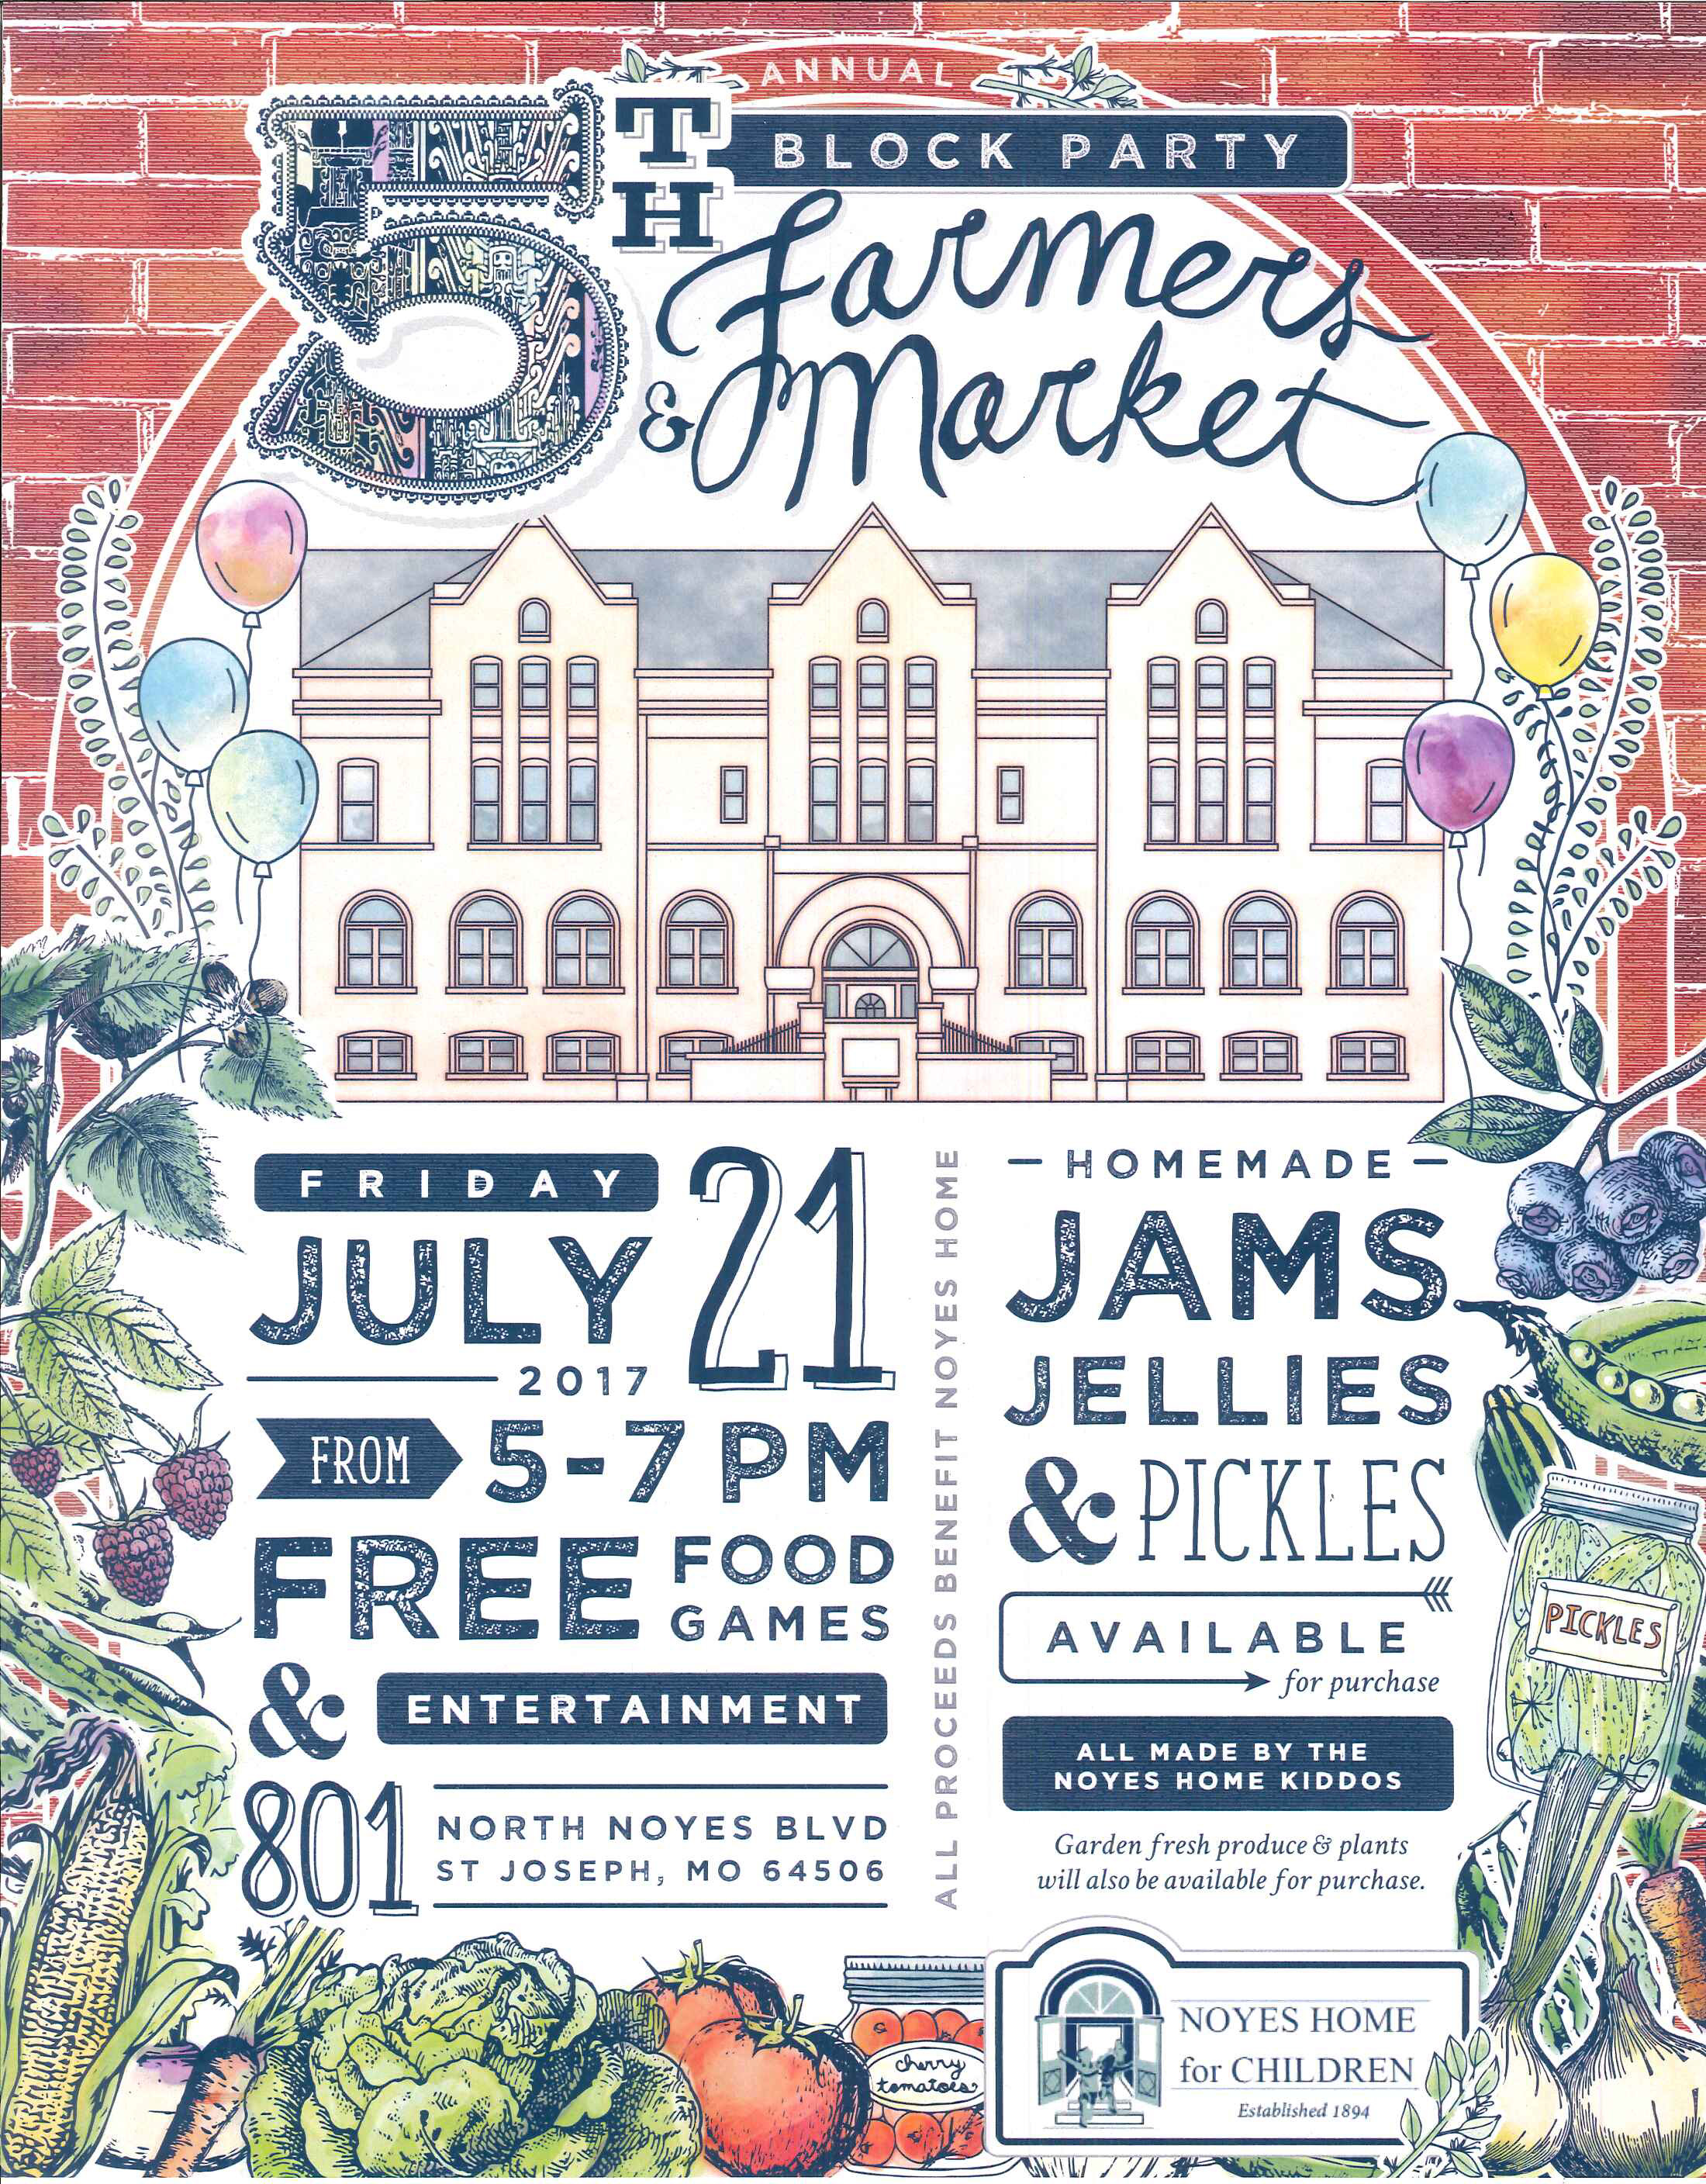 Noyes home block party july 21 2017 the noyes home for for Noyes home